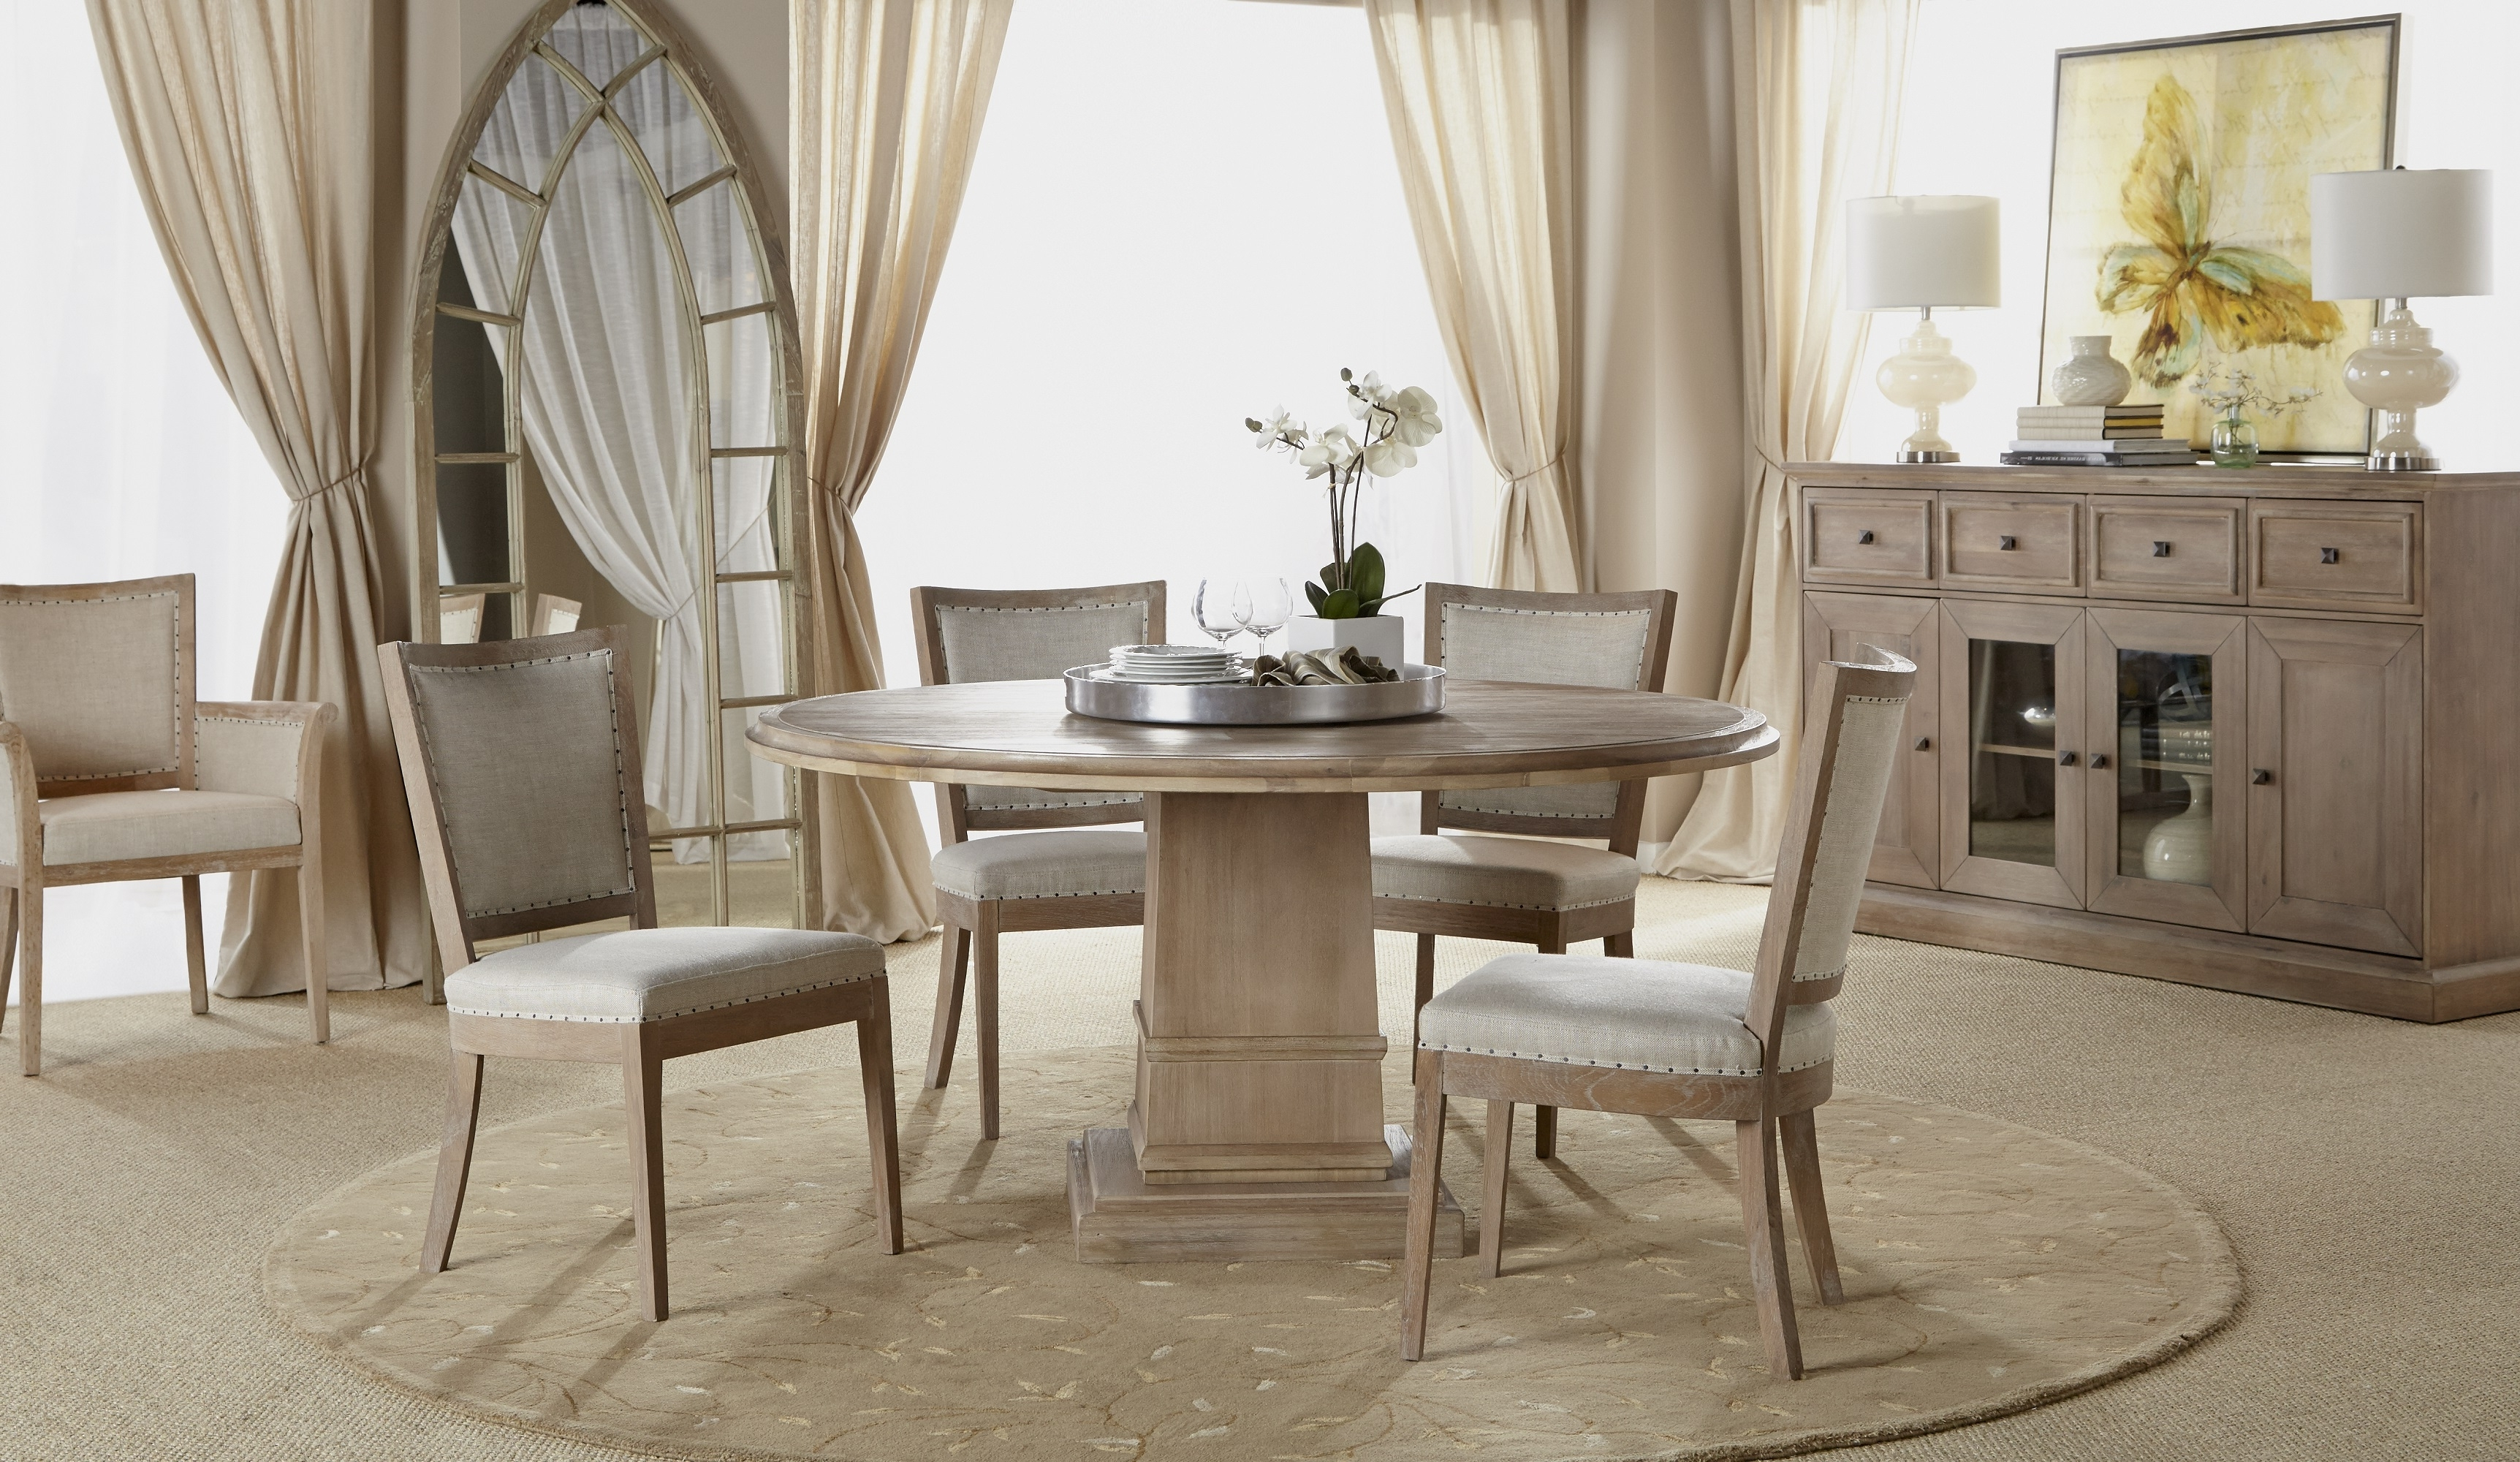 """Hudson 54"""" Round Dining Table for Most Up-to-Date Hudson Round Dining Tables"""